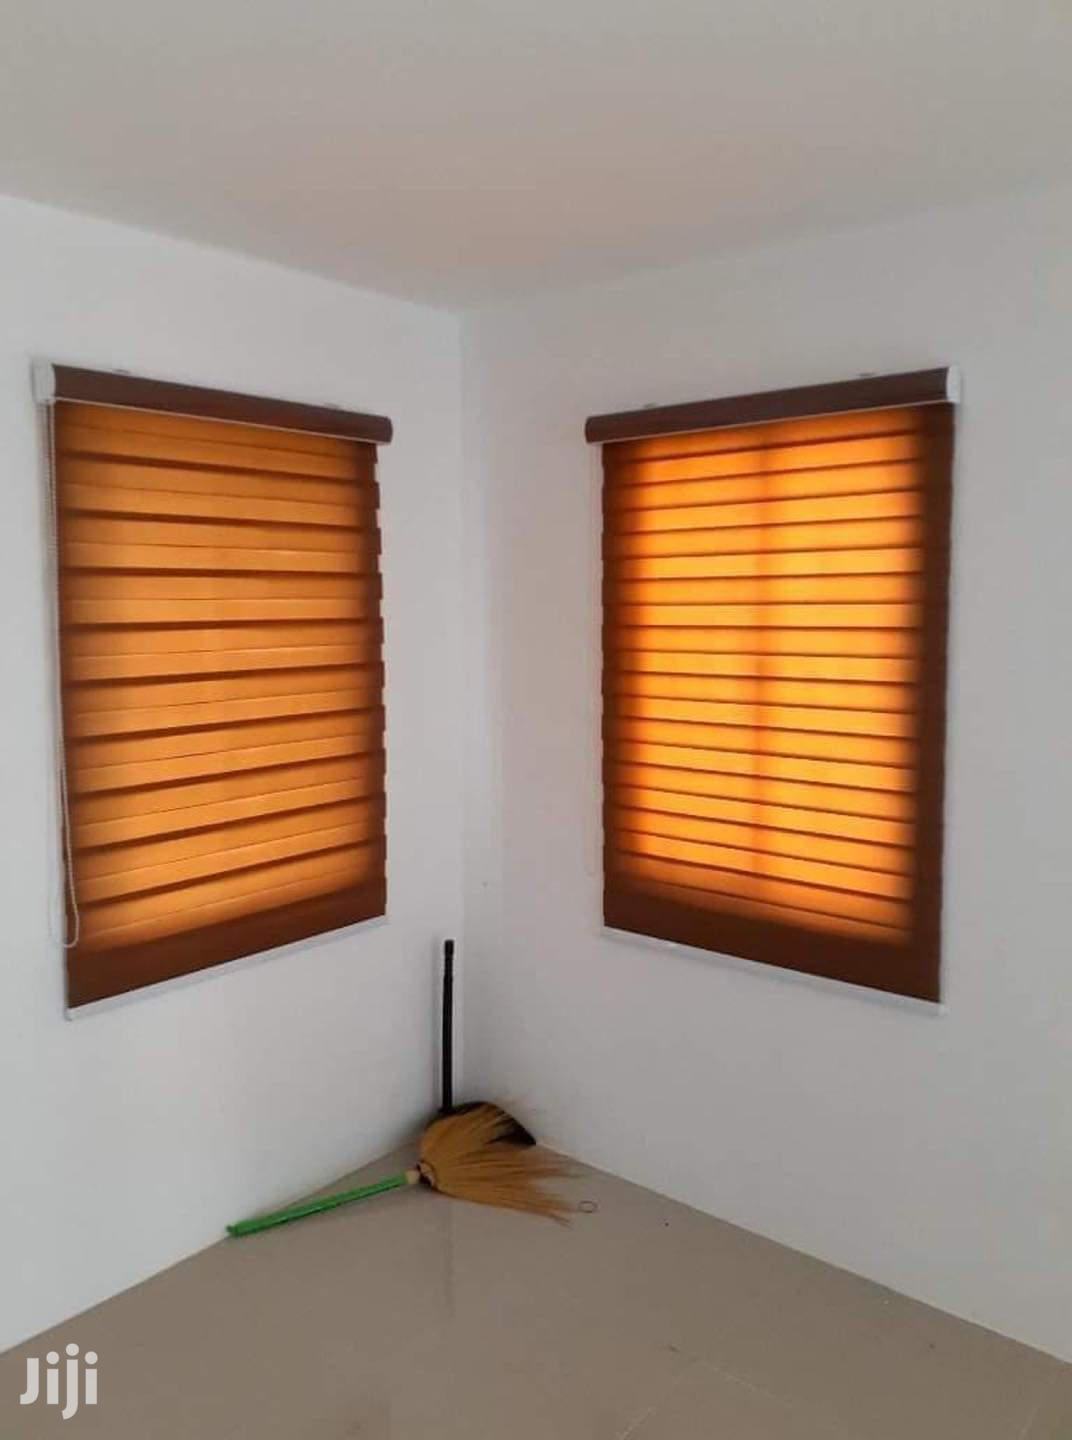 Free Delivery and Installation Curtains Blinds